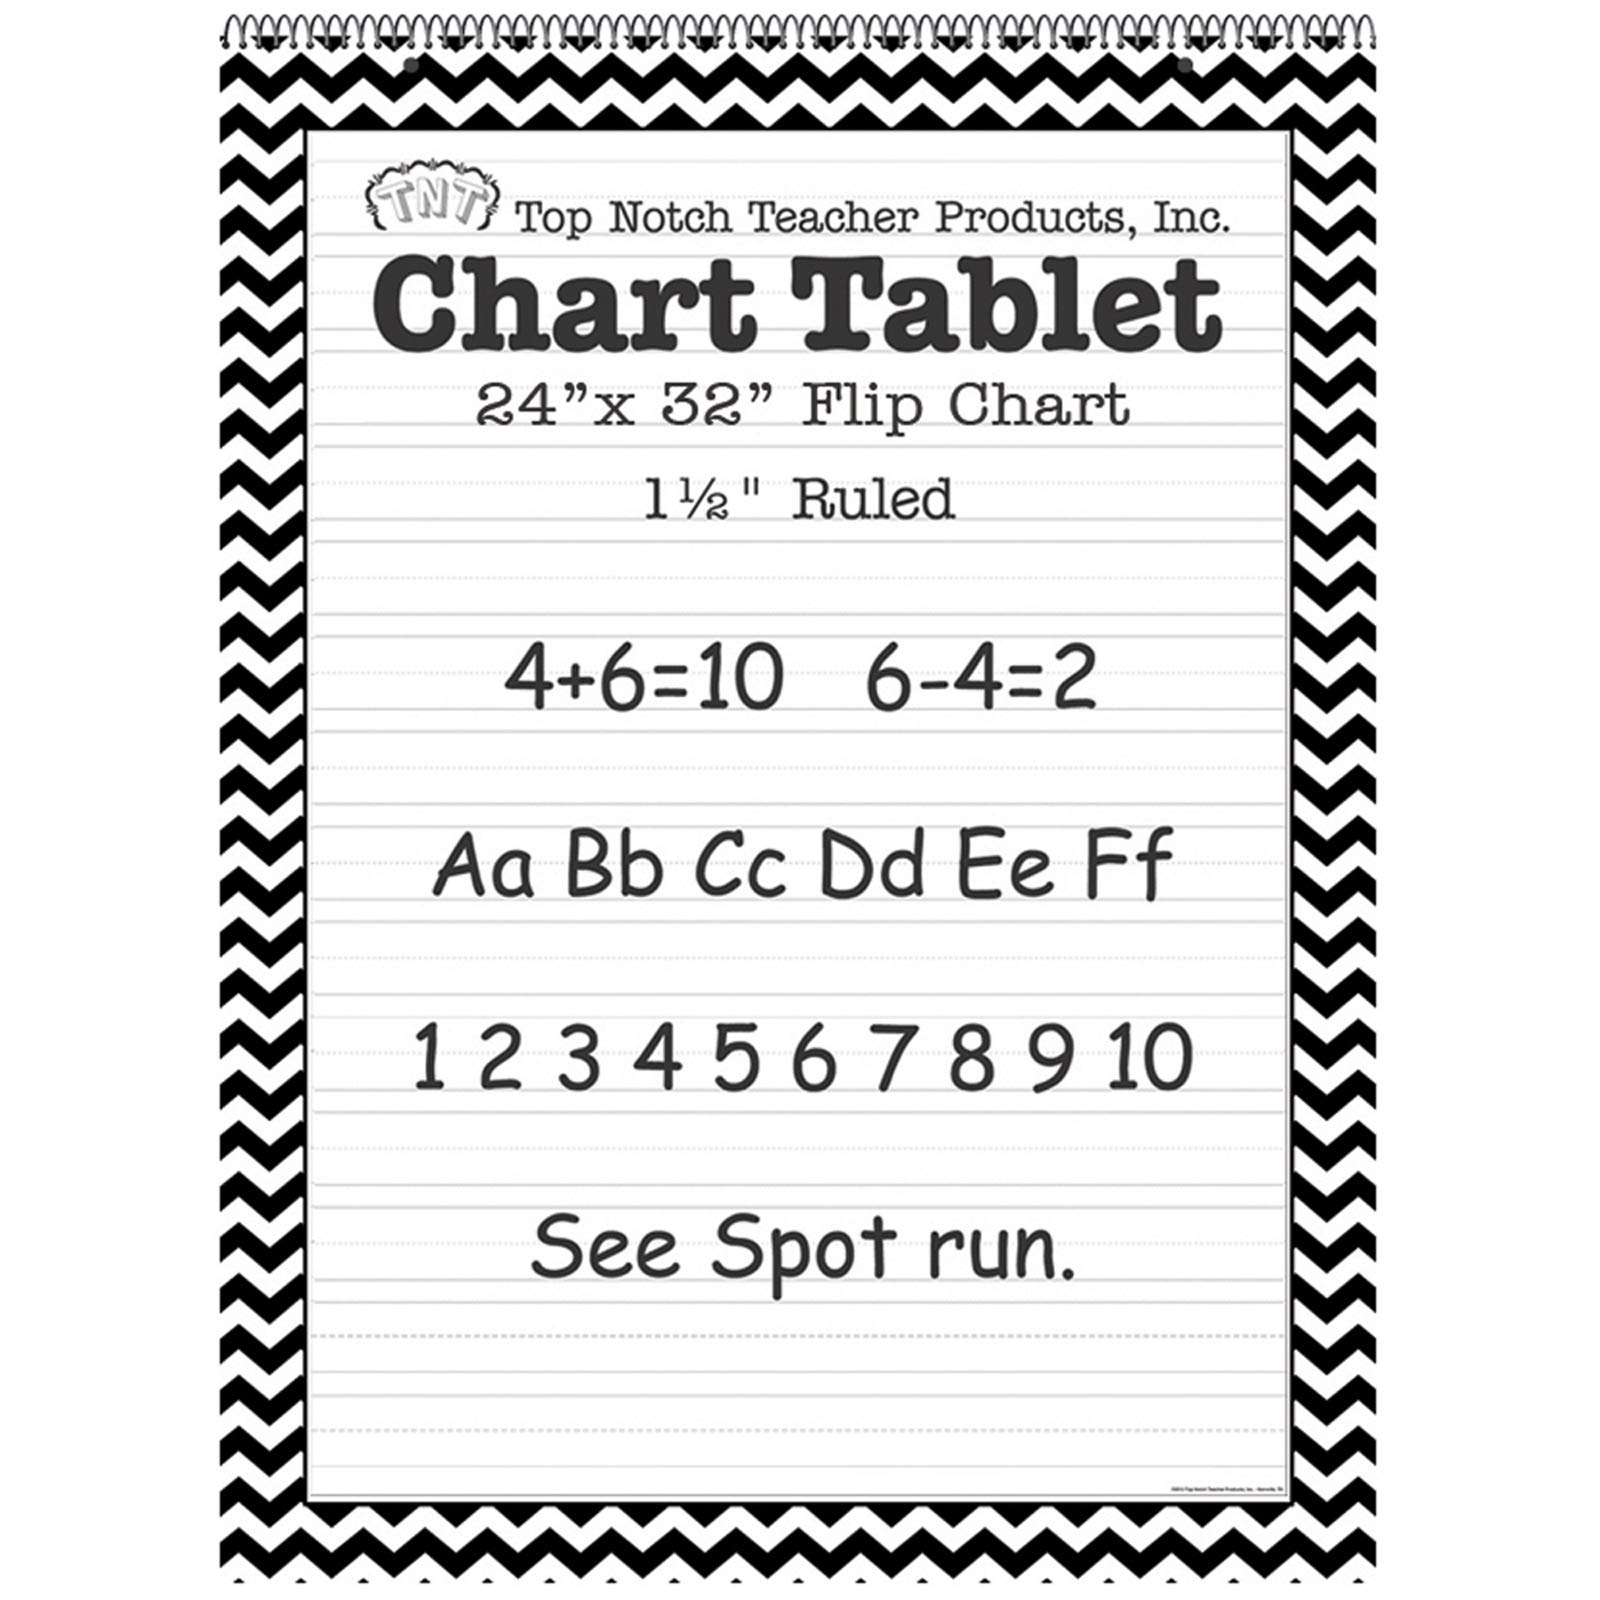 Top Notch Teacher Products TOP3855BN Chart Tablet, 24'' x 32'', 1-1/2'' Ruled, Black Chevron, 25 Sheets, Pack of 2 by Top Notch Teacher Products